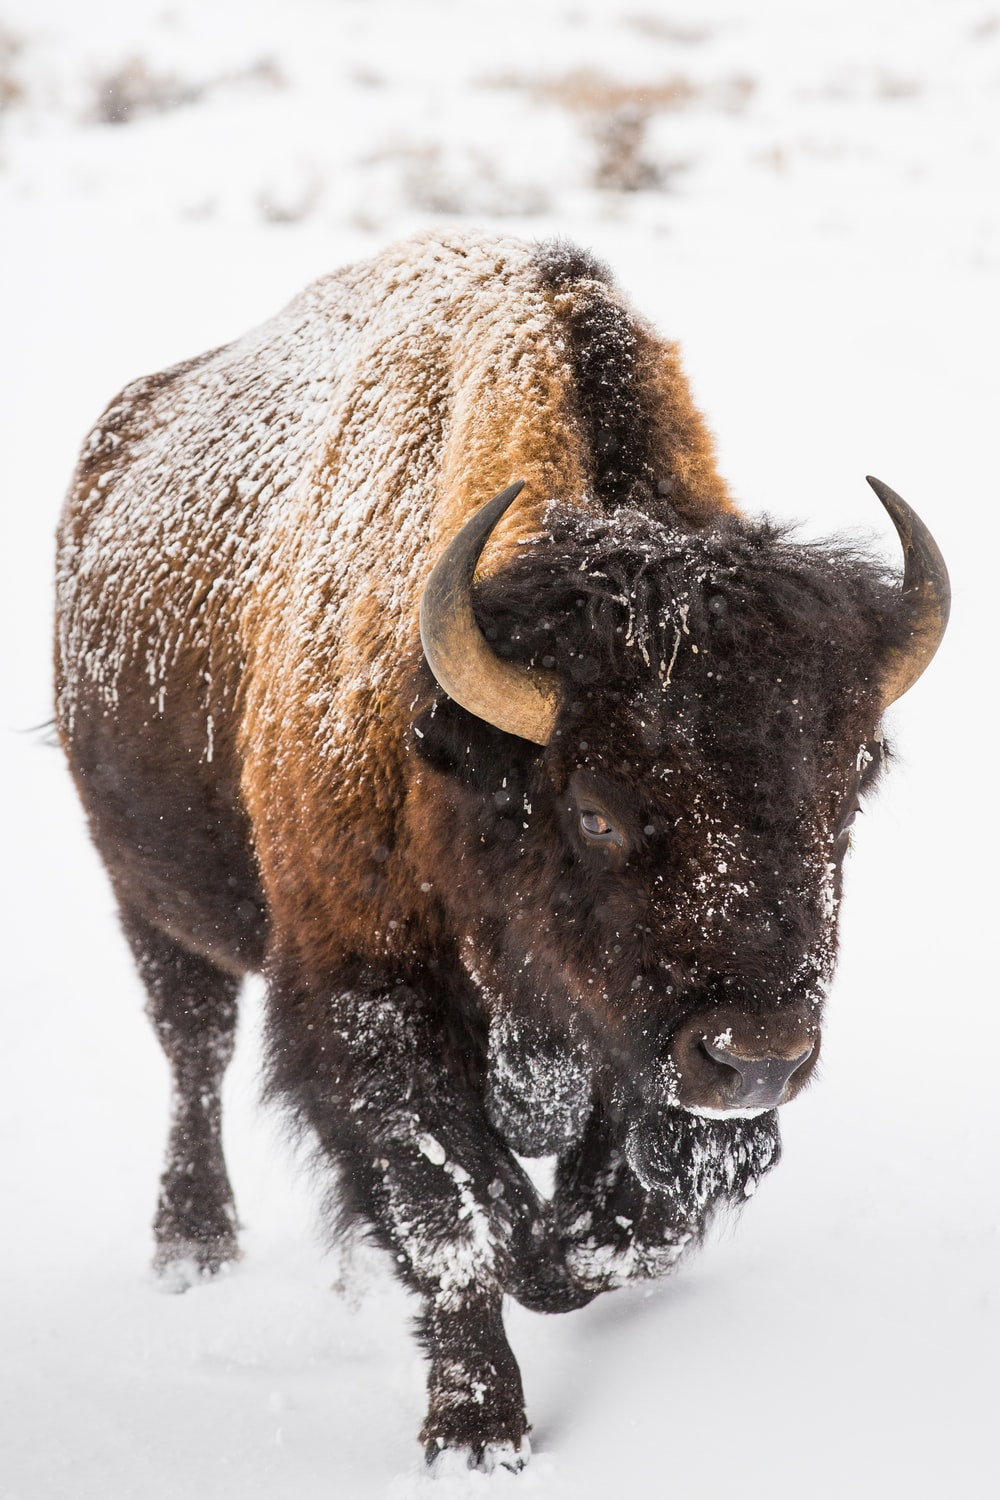 brown bison on white snow covered ground during daytime